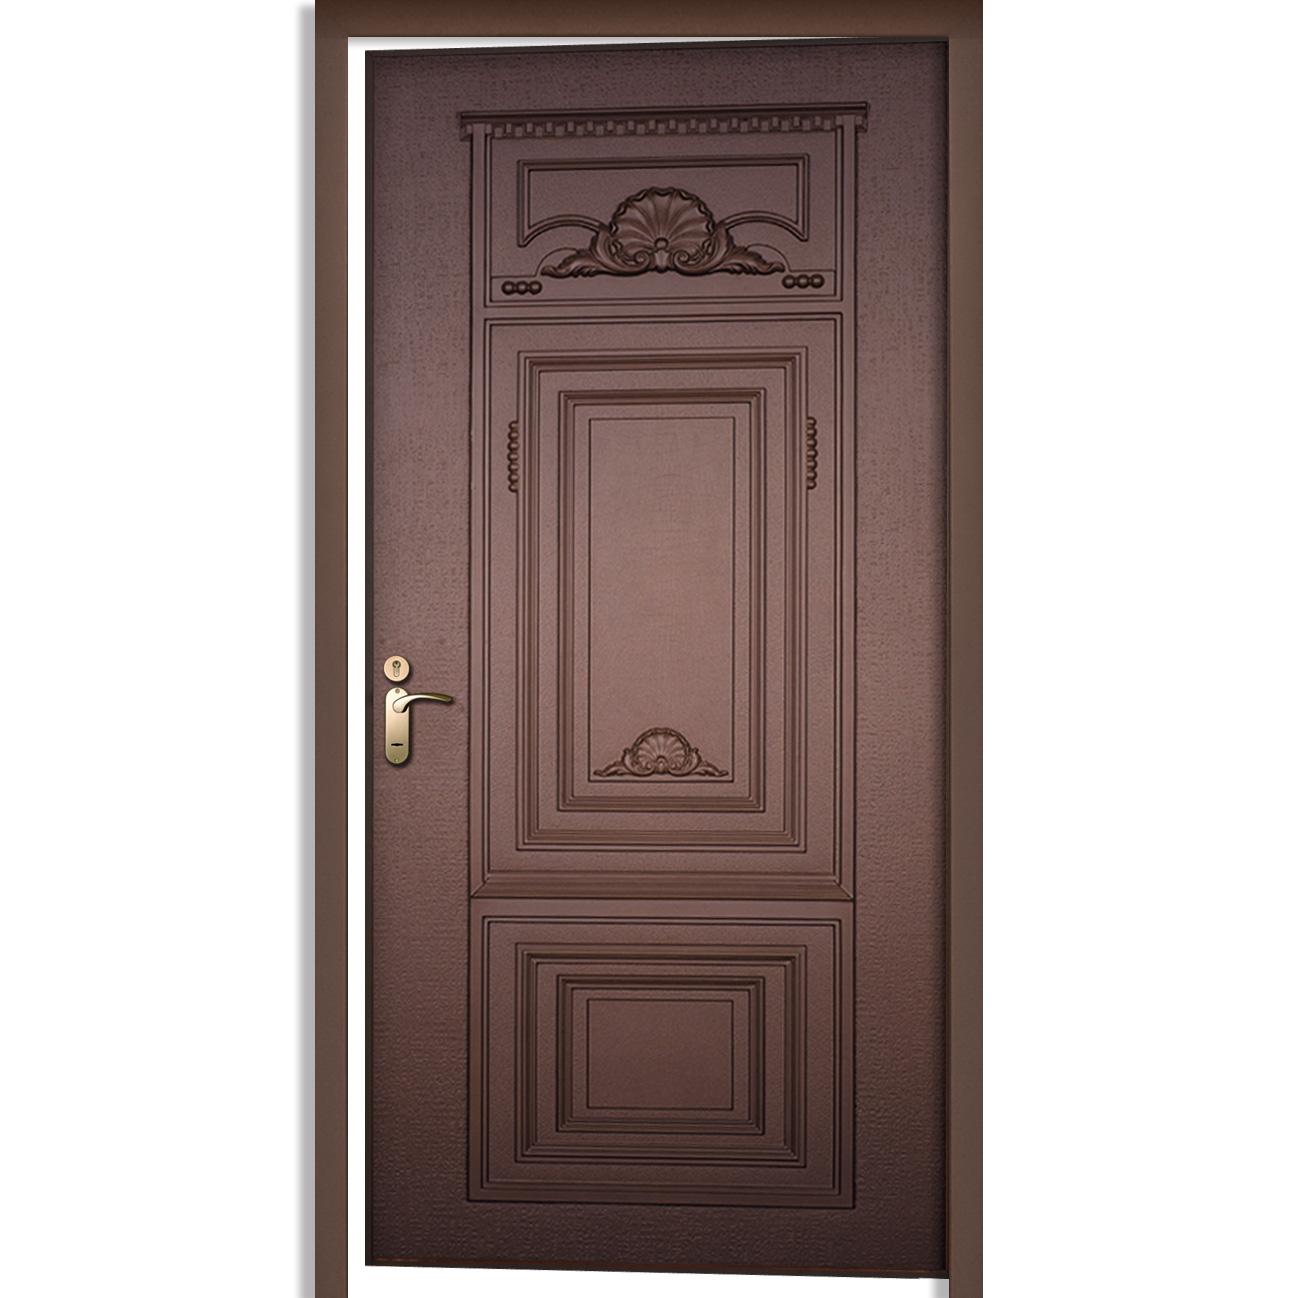 Image gallery single door for Exterior wooden door designs